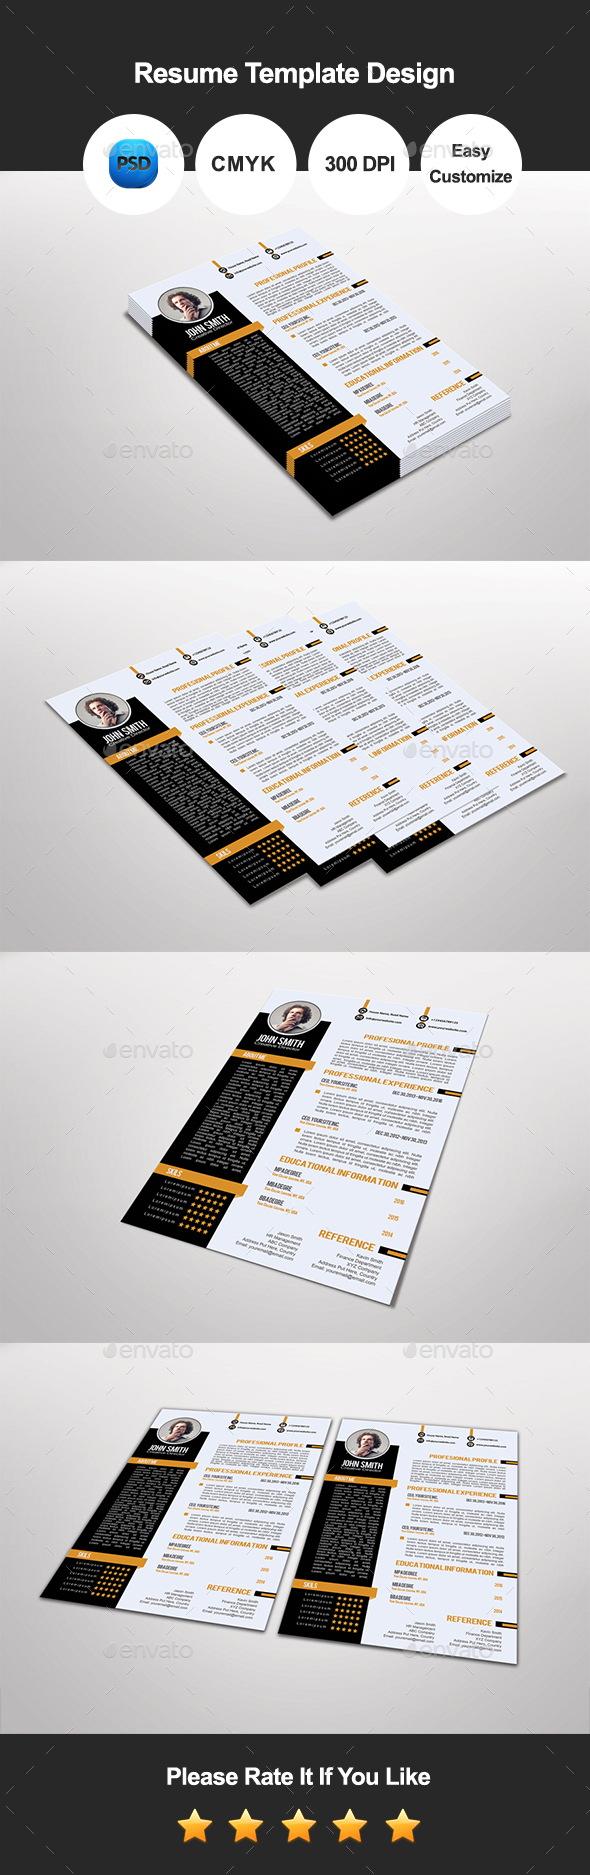 Tansa Resume Template Design - Resumes Stationery